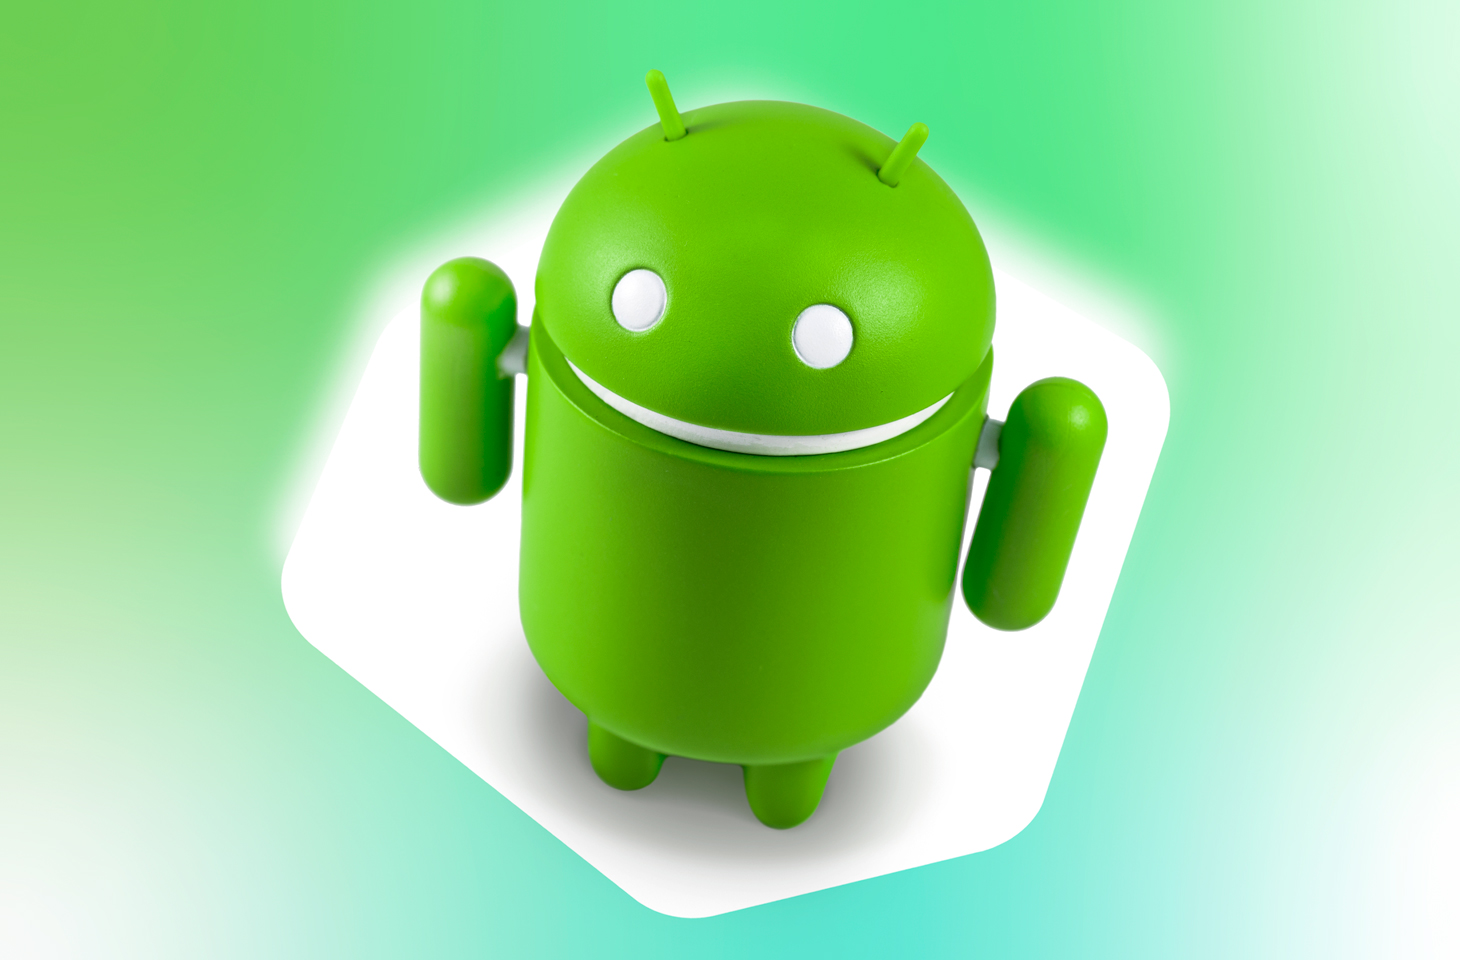 Android: Close apps - this is how you close background applications